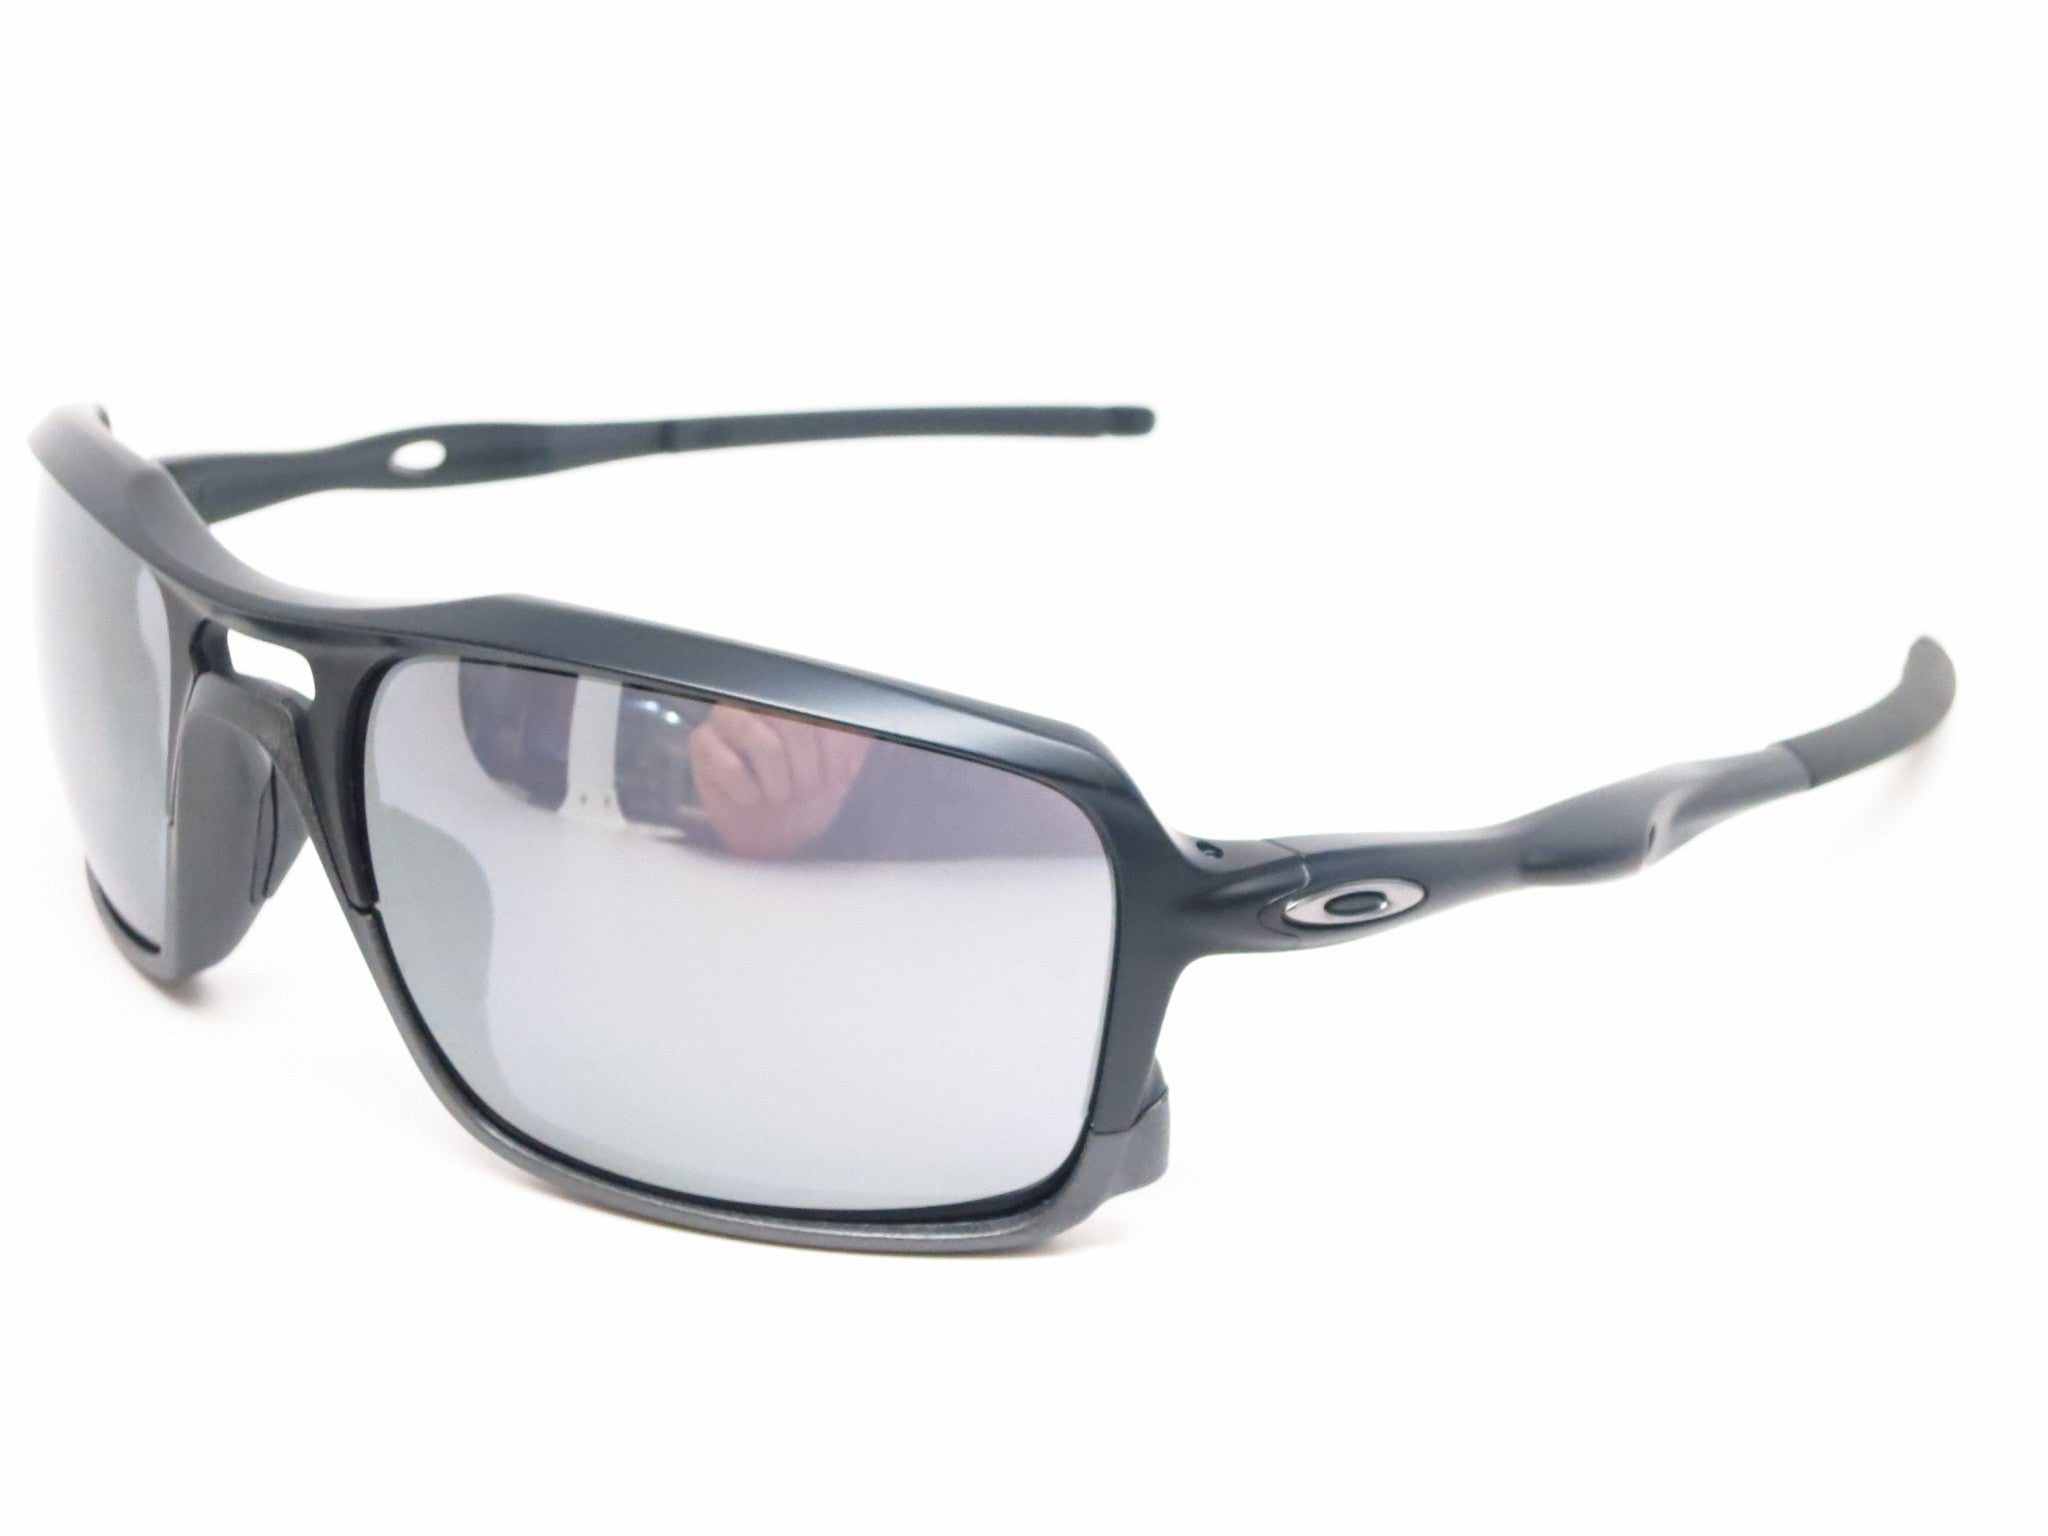 e8d28b8d65 Oakley Triggerman OO9266-01 Matte Black Sunglasses - Eye Heart Shades -  Oakley - Sunglasses ...